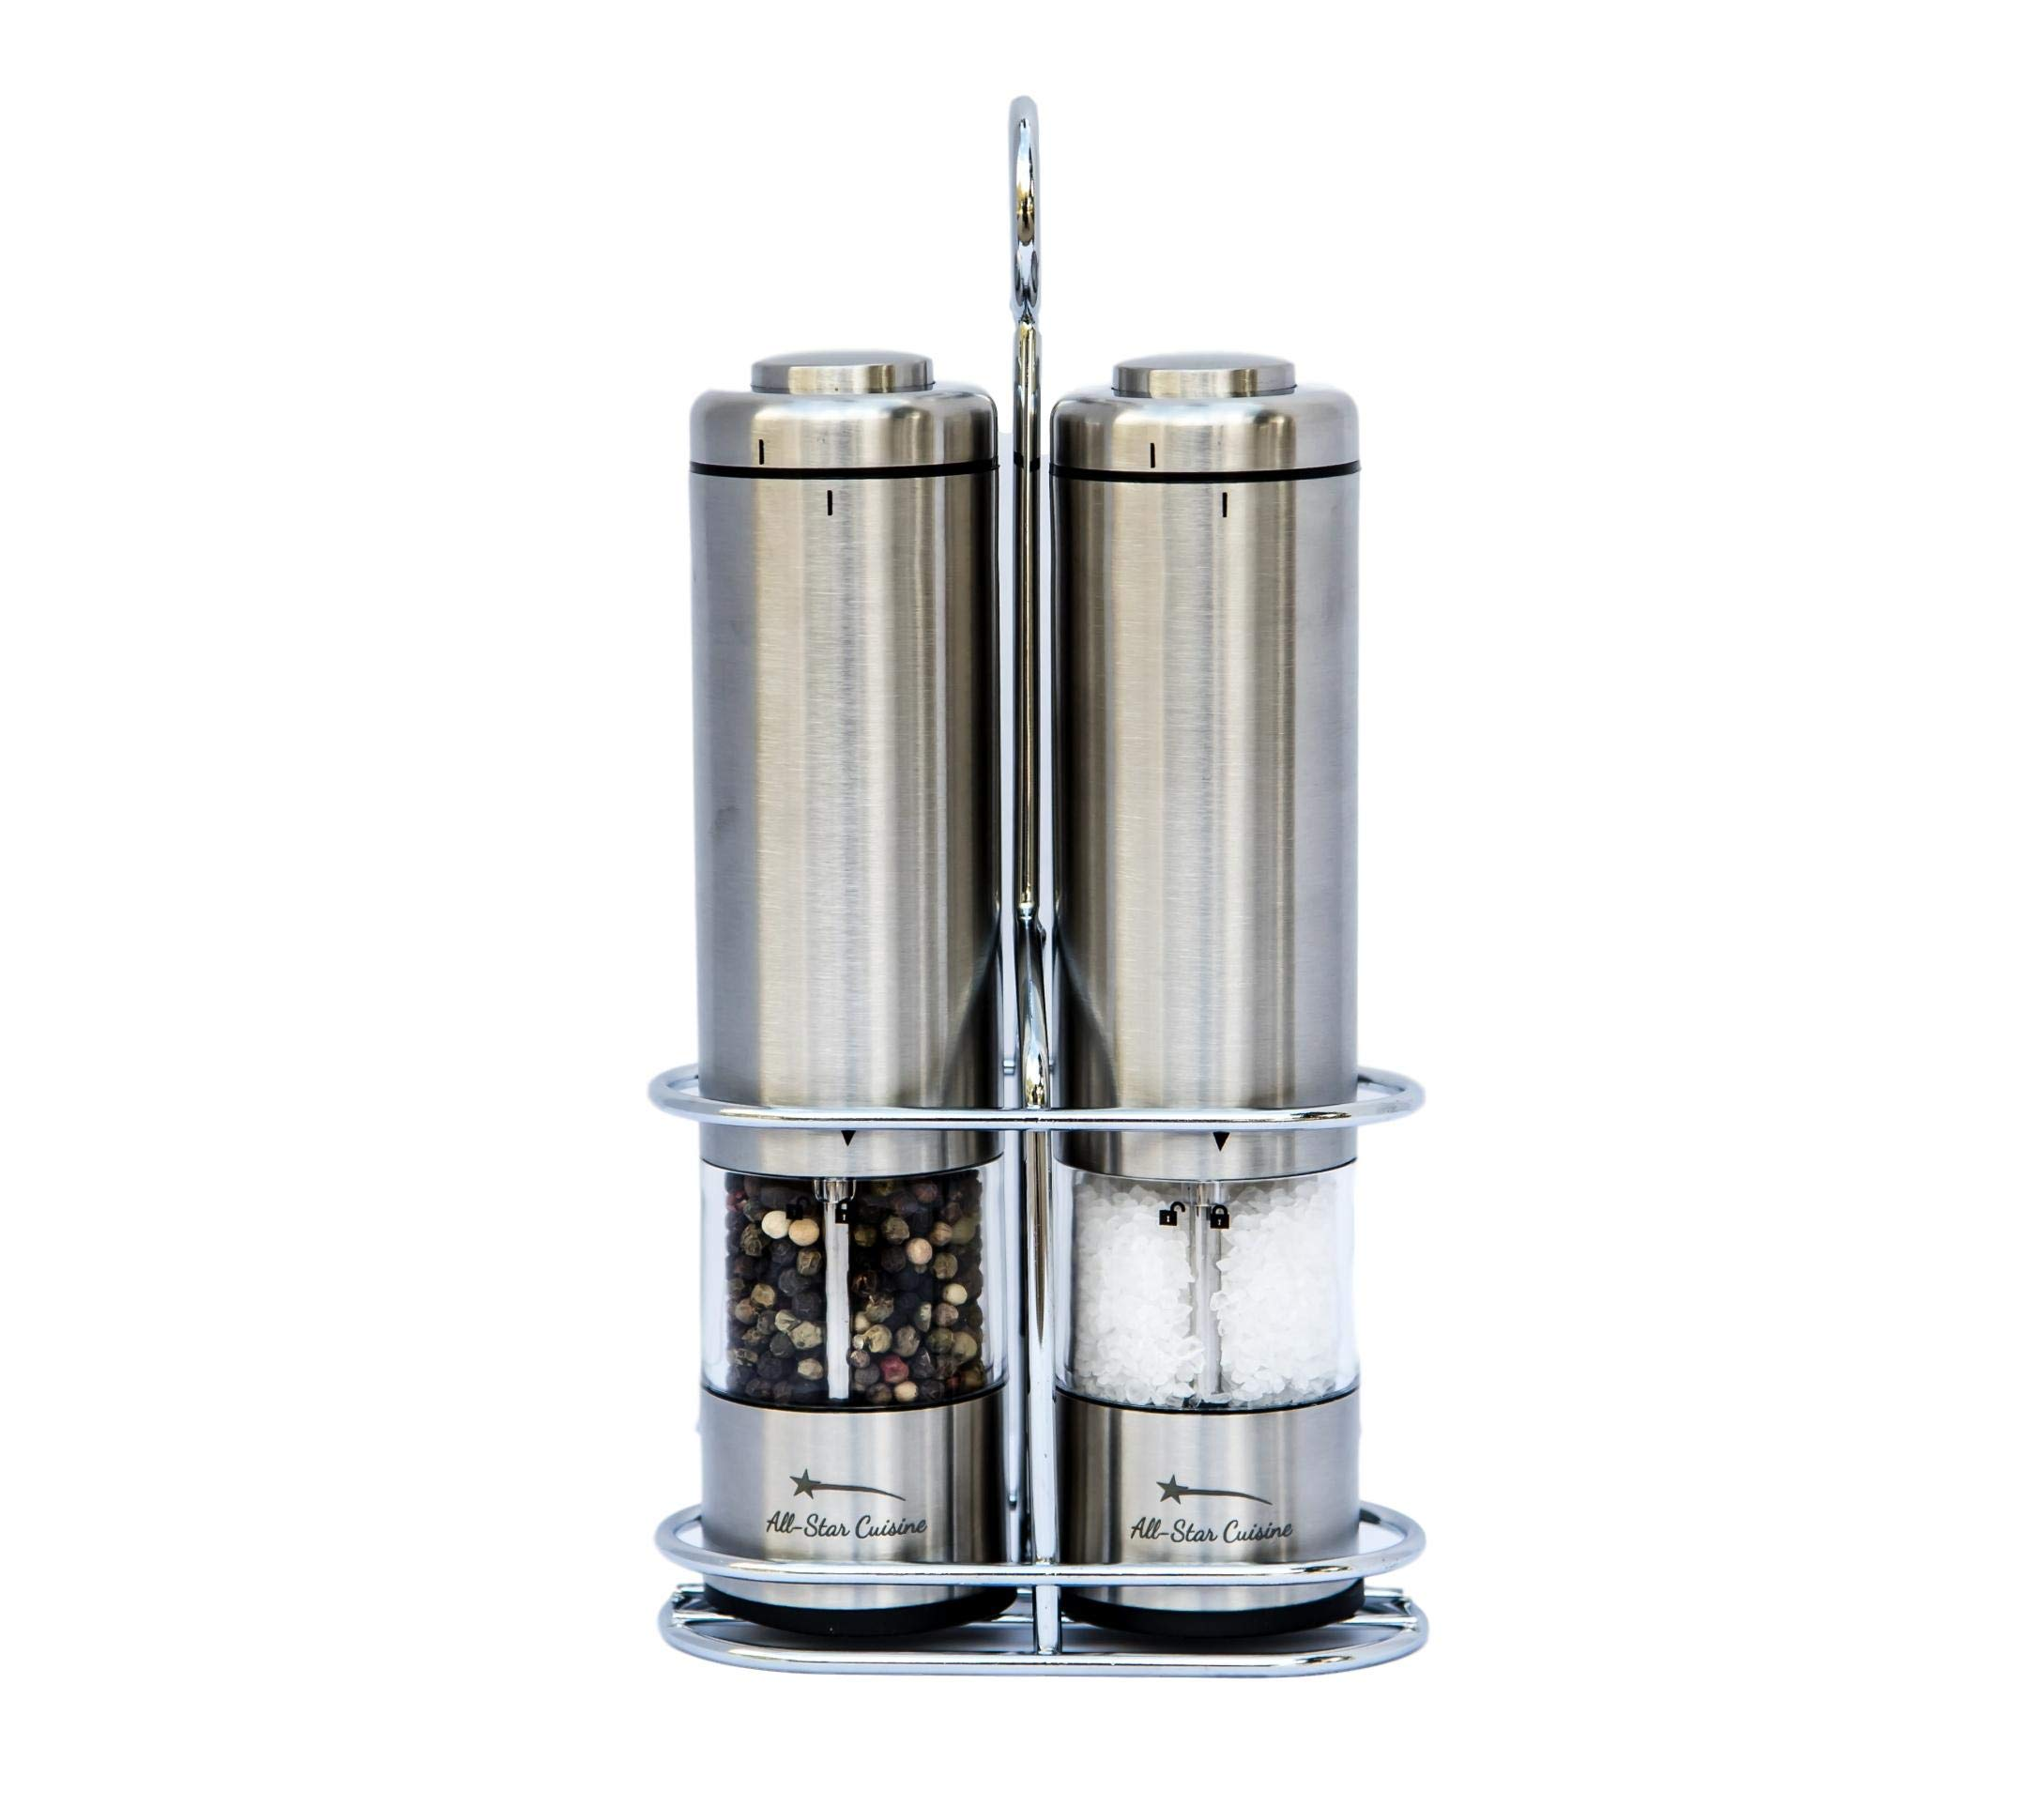 Premium Battery Operated Electric Salt and Pepper Grinder Mill Set of 2 | Adjustable Coarseness | LED Light | Clear Acrylic Core | Complimentary Stainless Steel Holder